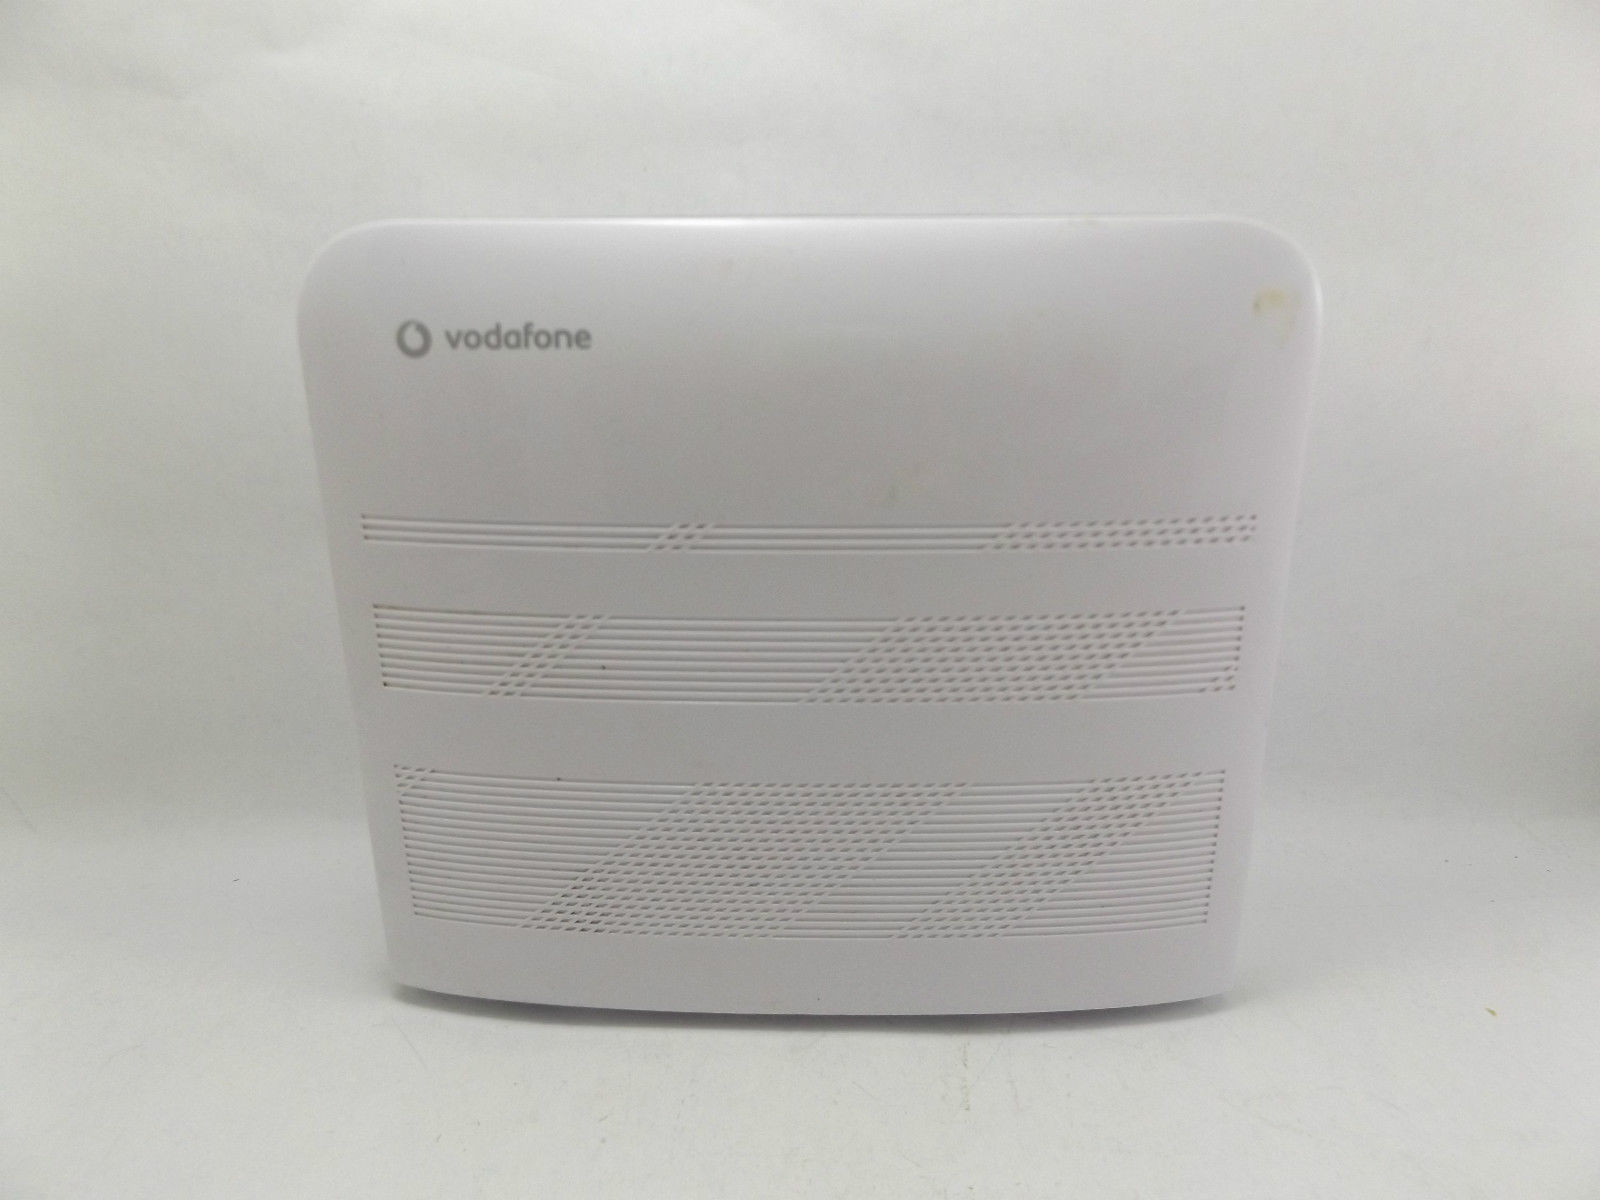 Vodafone HG556a Home Gateway Network Router and 42 similar items